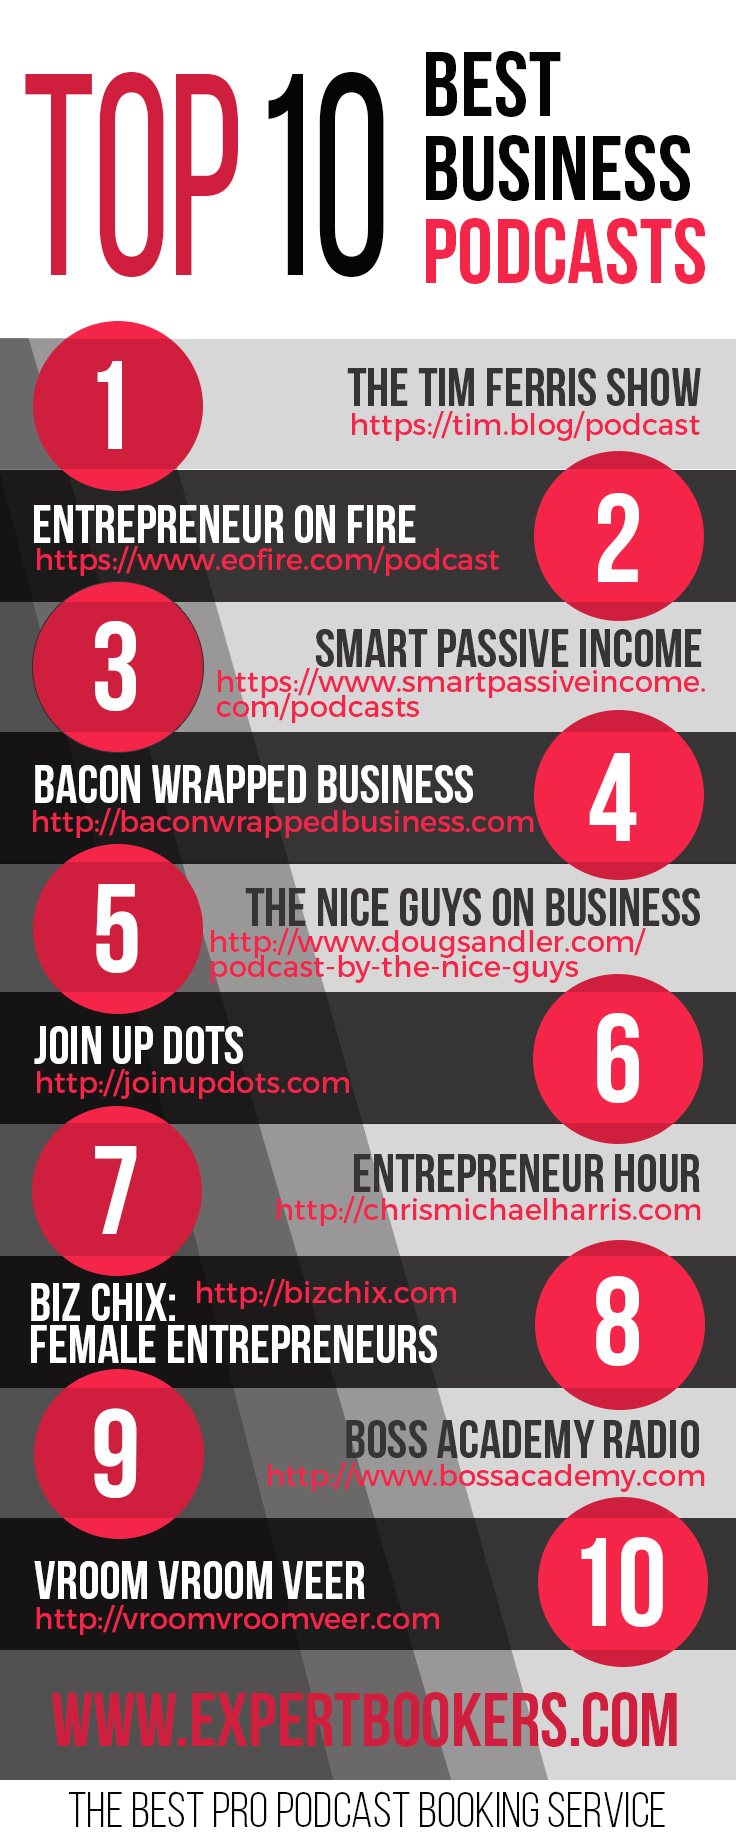 PINTEREST-Top-10-business-podcasts-expert-bookers-podcast-booking-service-infographic.jpg